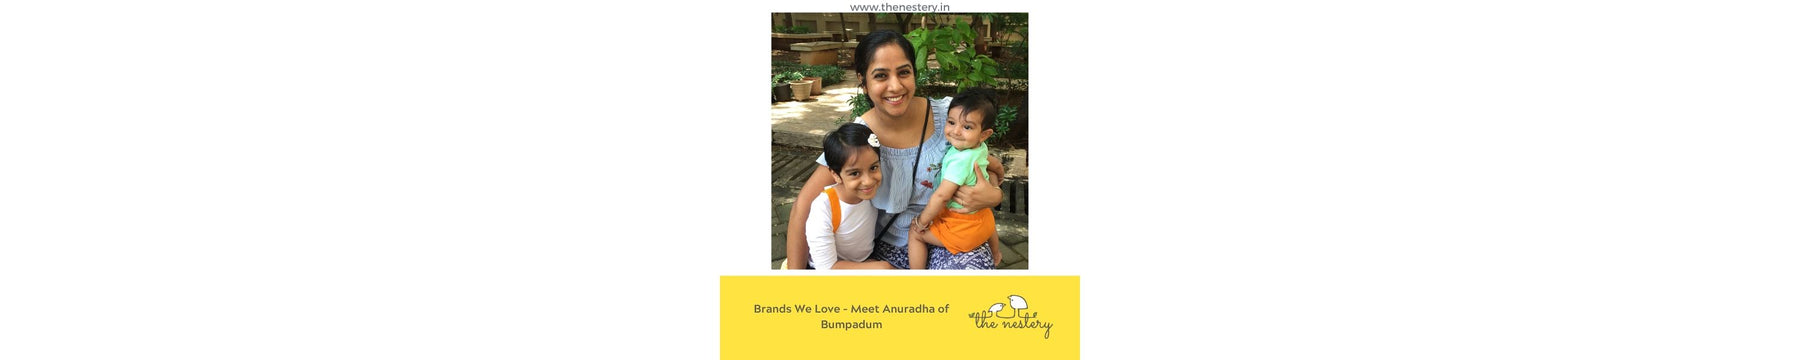 Brands We Love - Meet Anuradha of Bumpadum